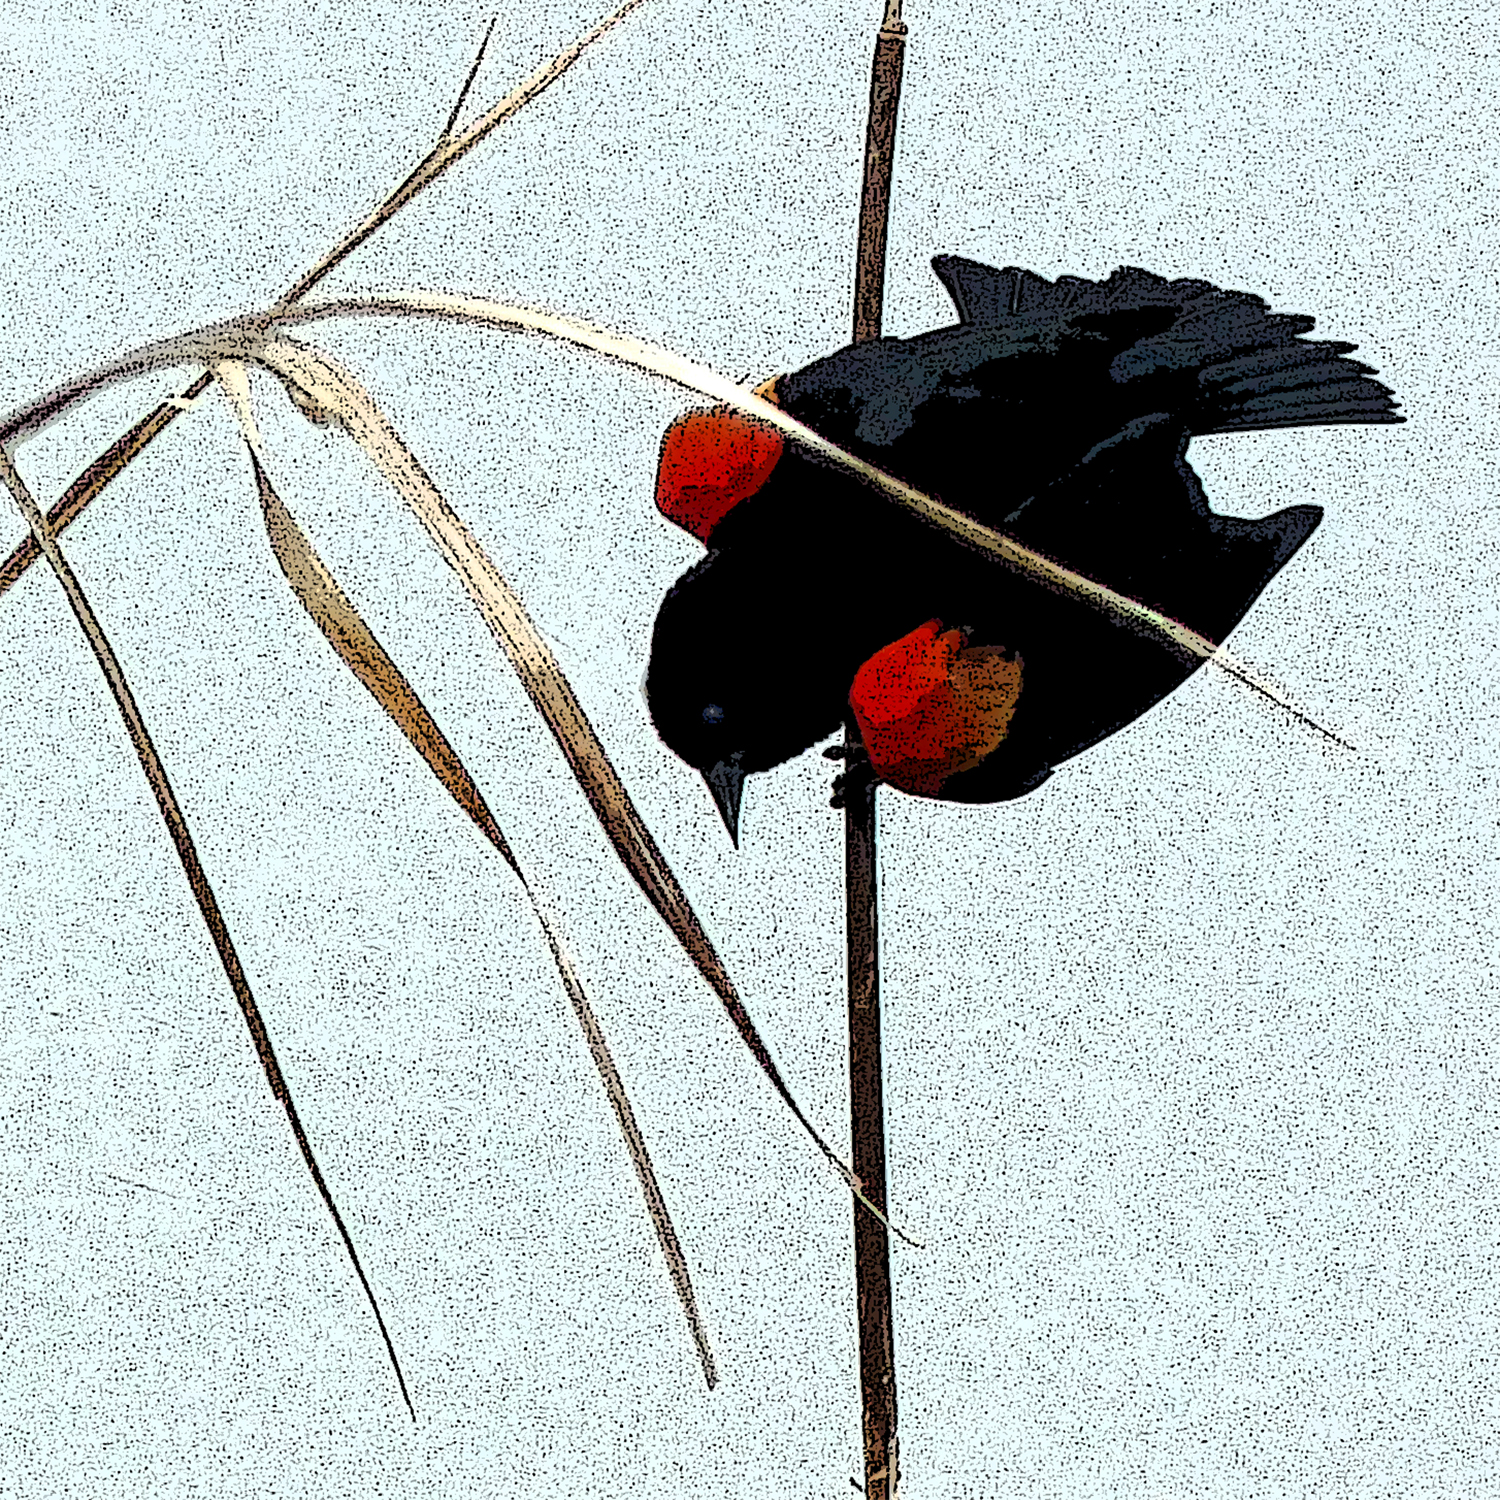 Red-Winged Blackbird, 2015